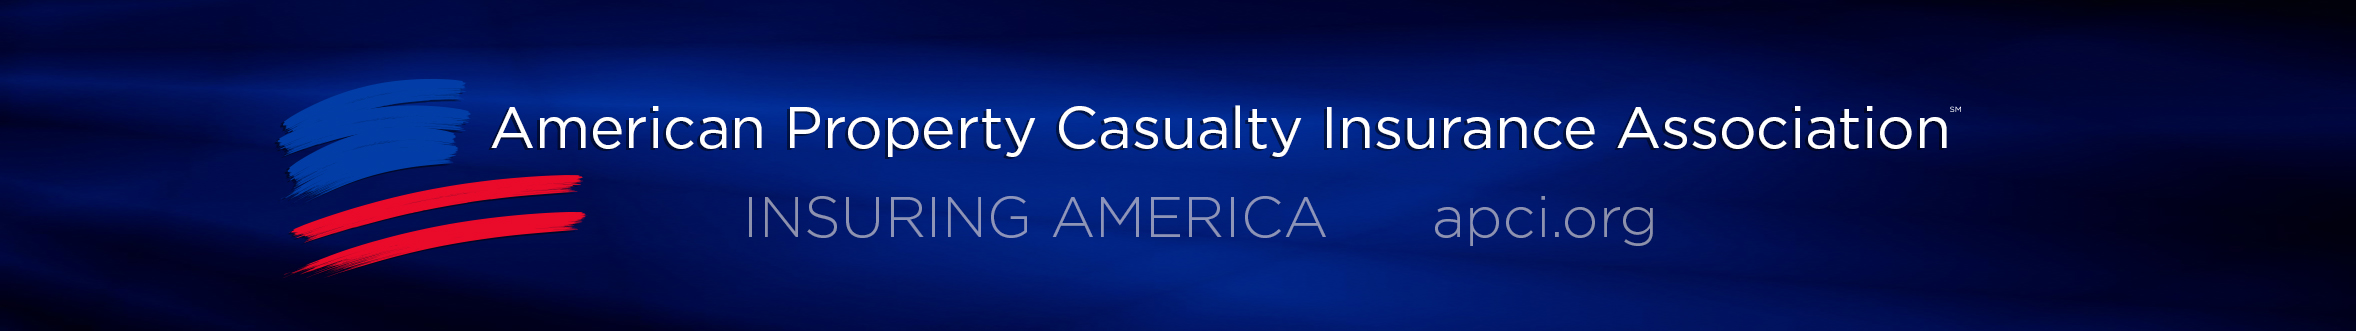 American Property Casualty Insurance Association